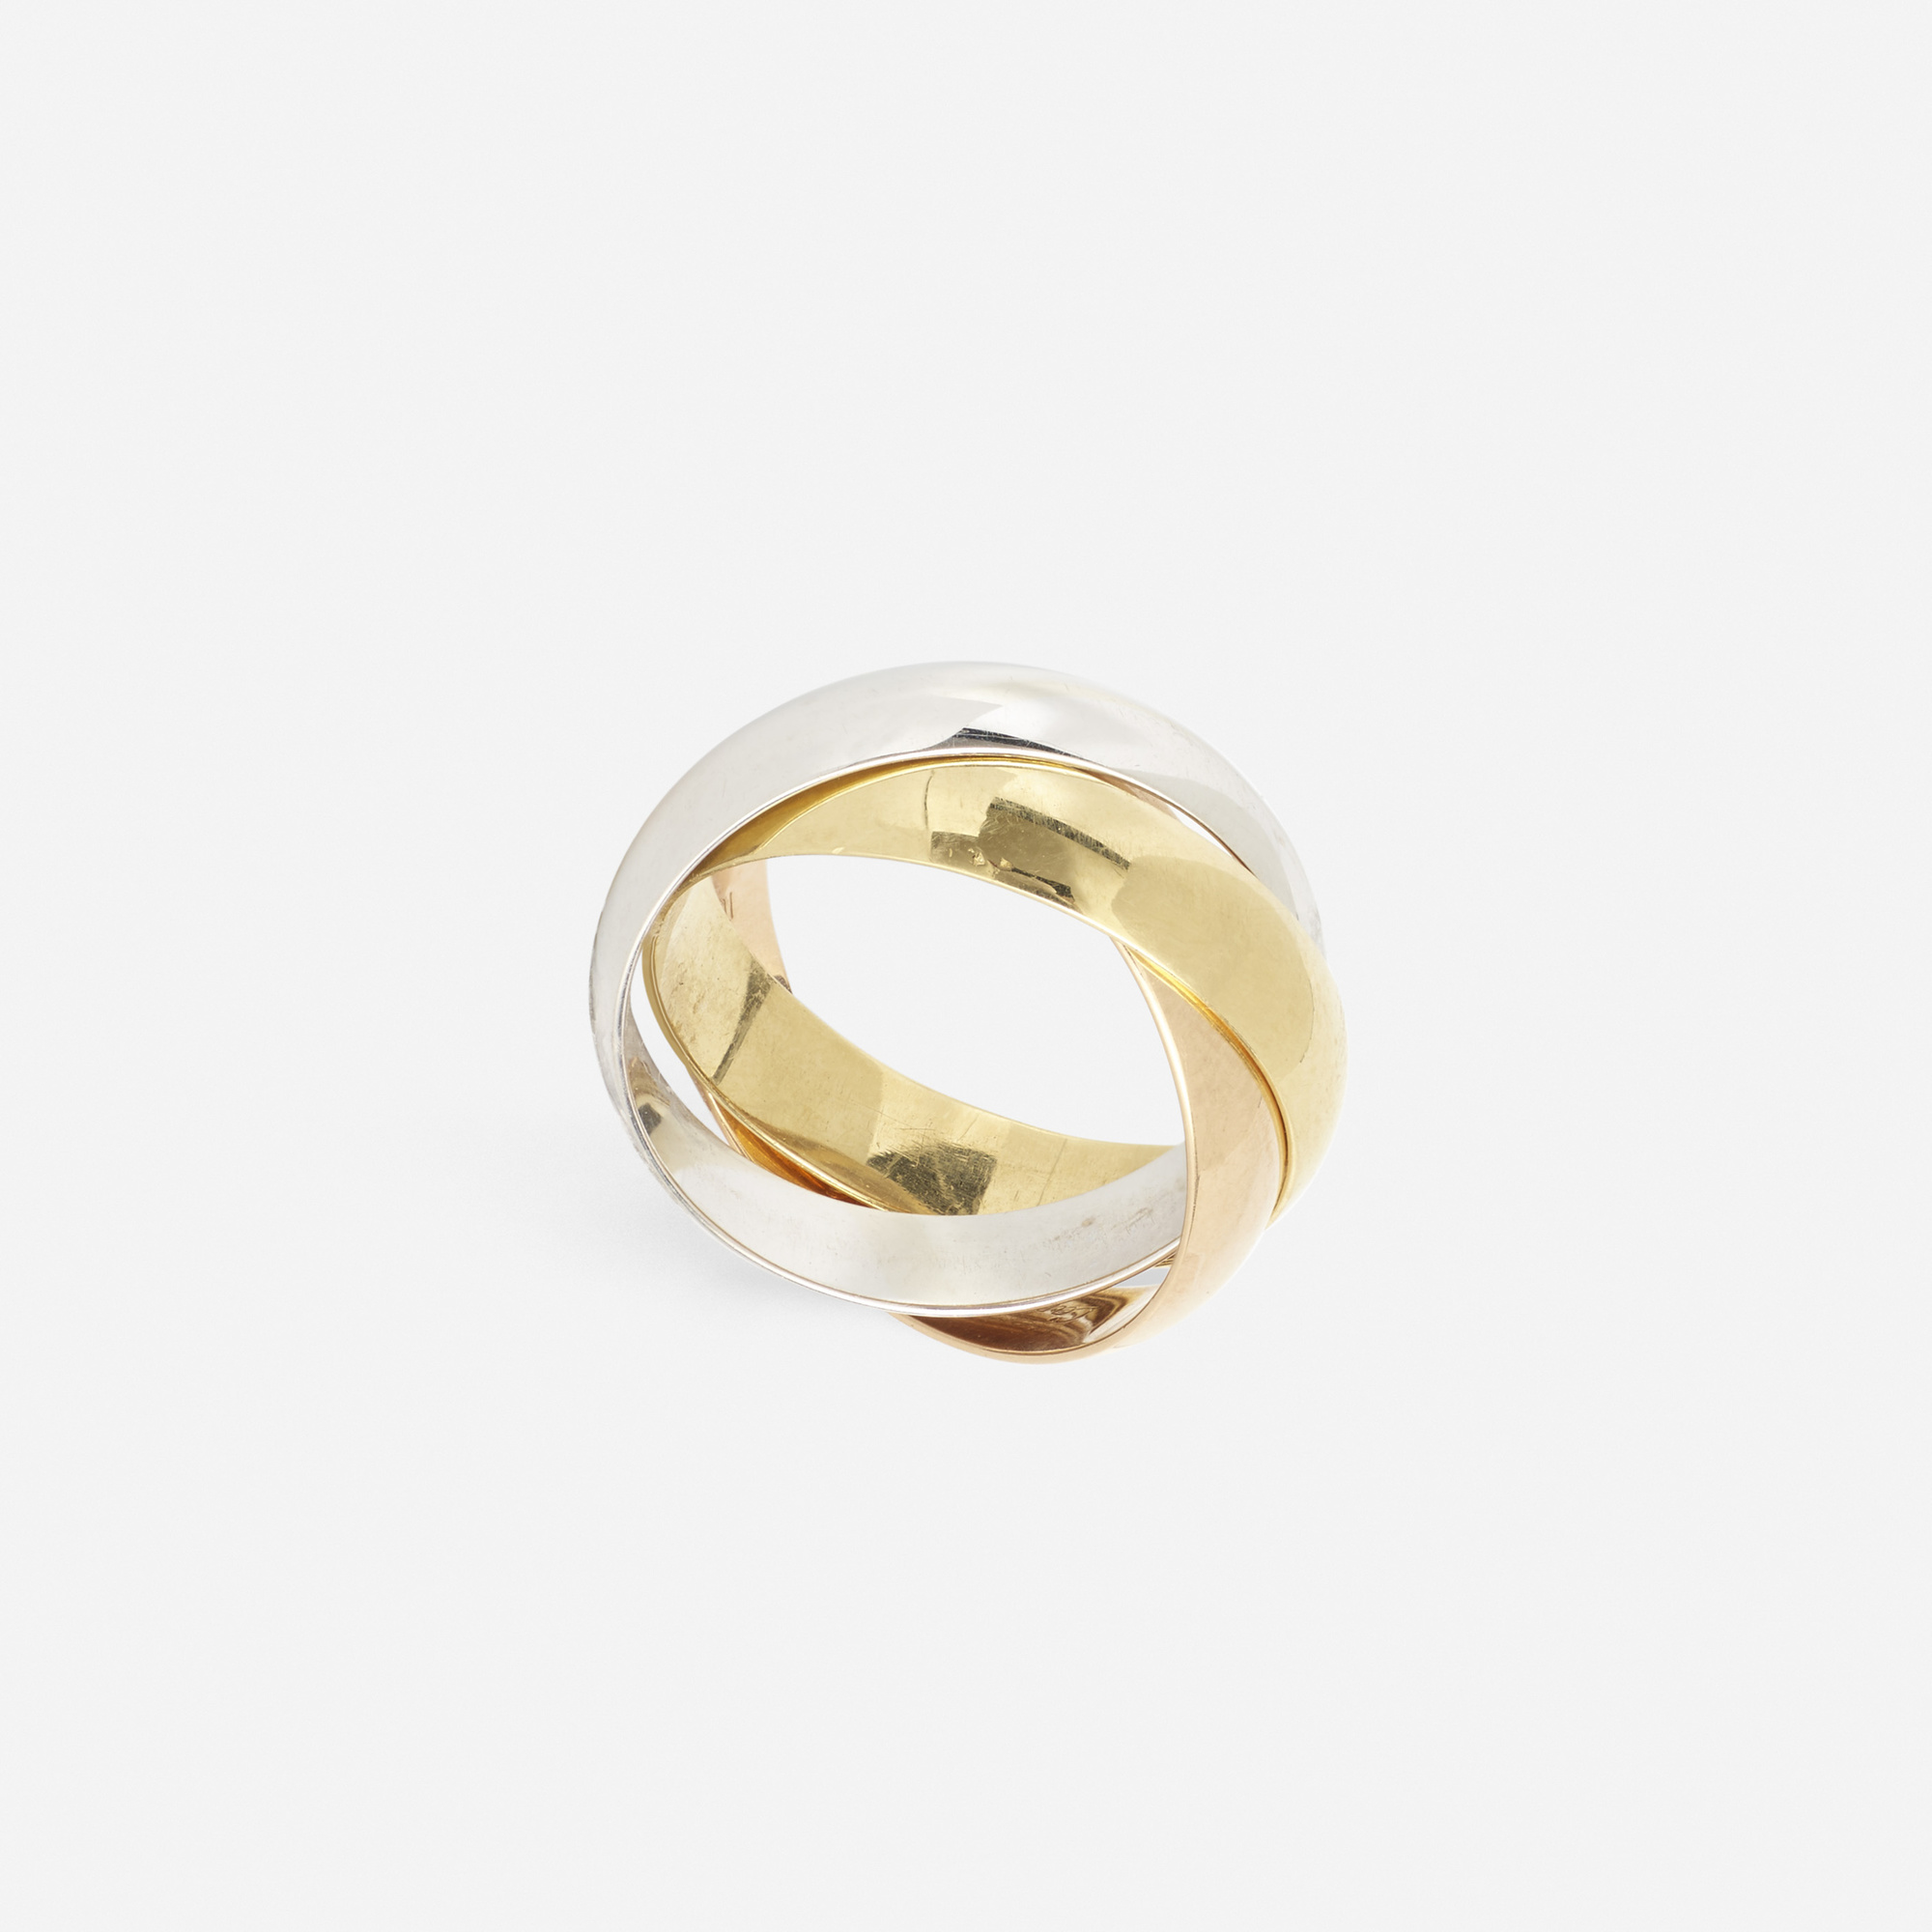 293: Cartier / A gold Trinity ring (1 of 2)